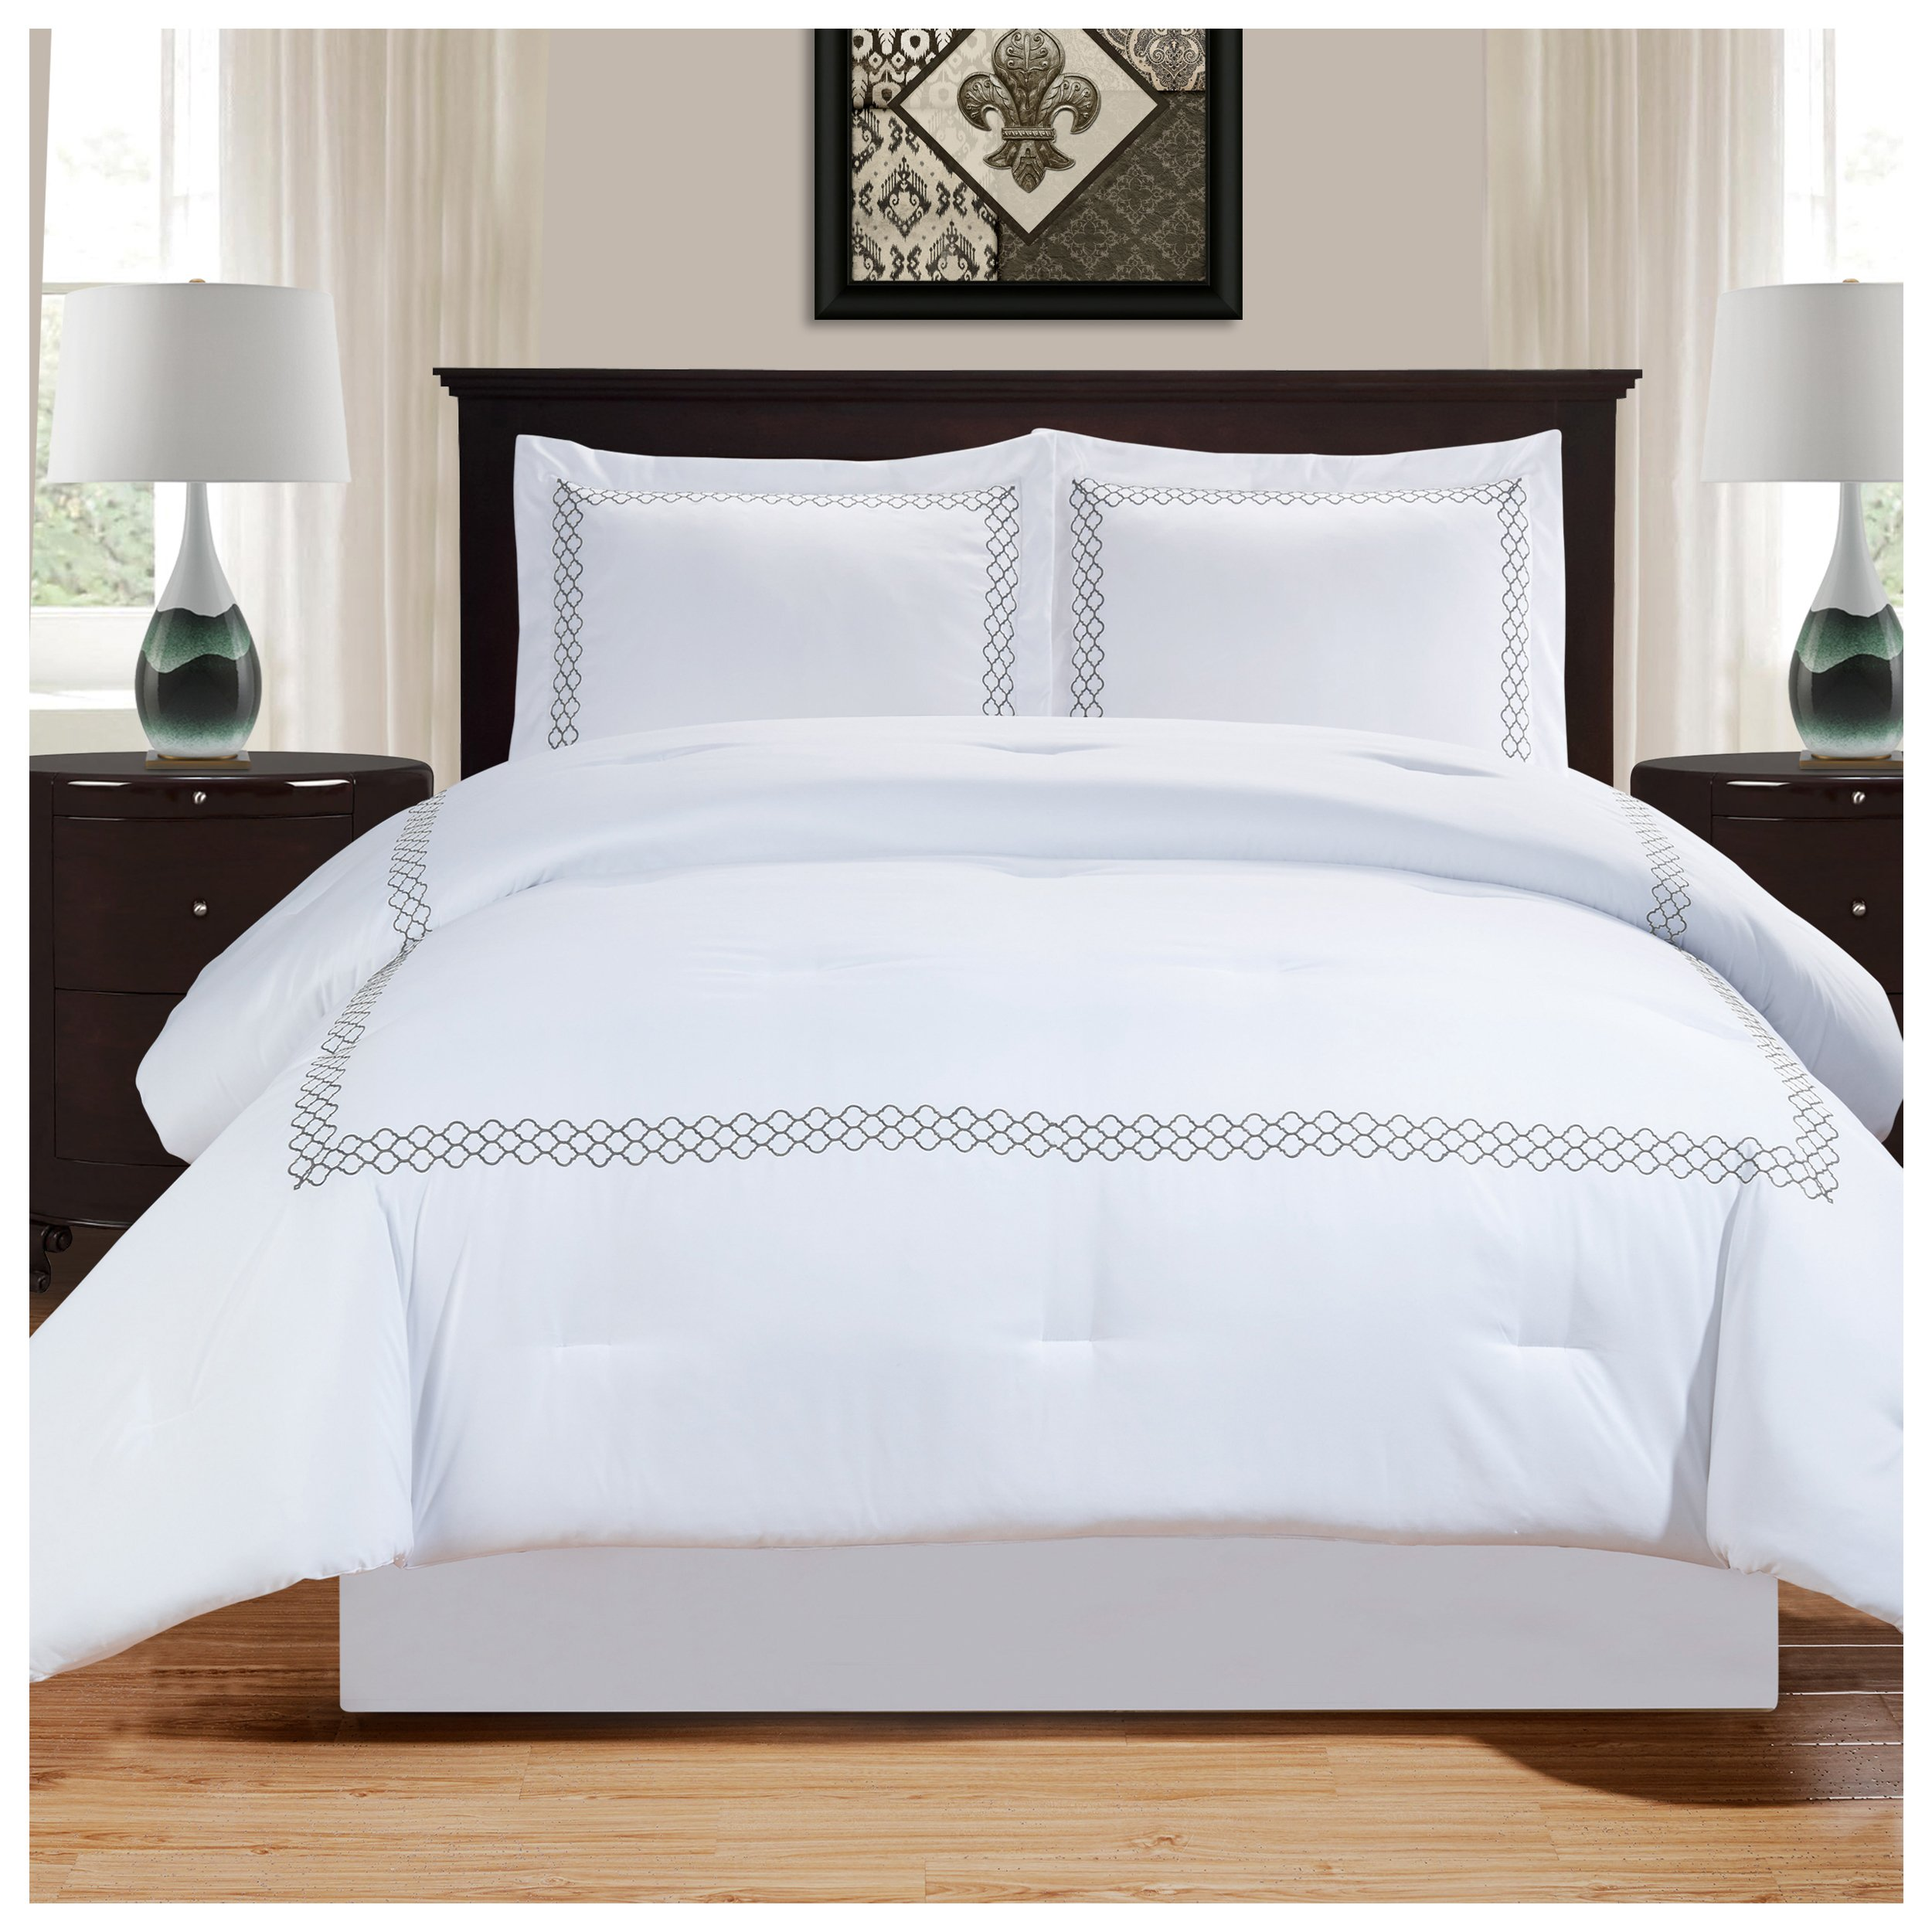 Superior Layla Trellis Embroidered Comforter Set with Pillow Sham, Luxury Hotel Bedding with Soft Microfiber Shell, All Season Down Alternative Fill - Twin/Twin XL, White with Grey